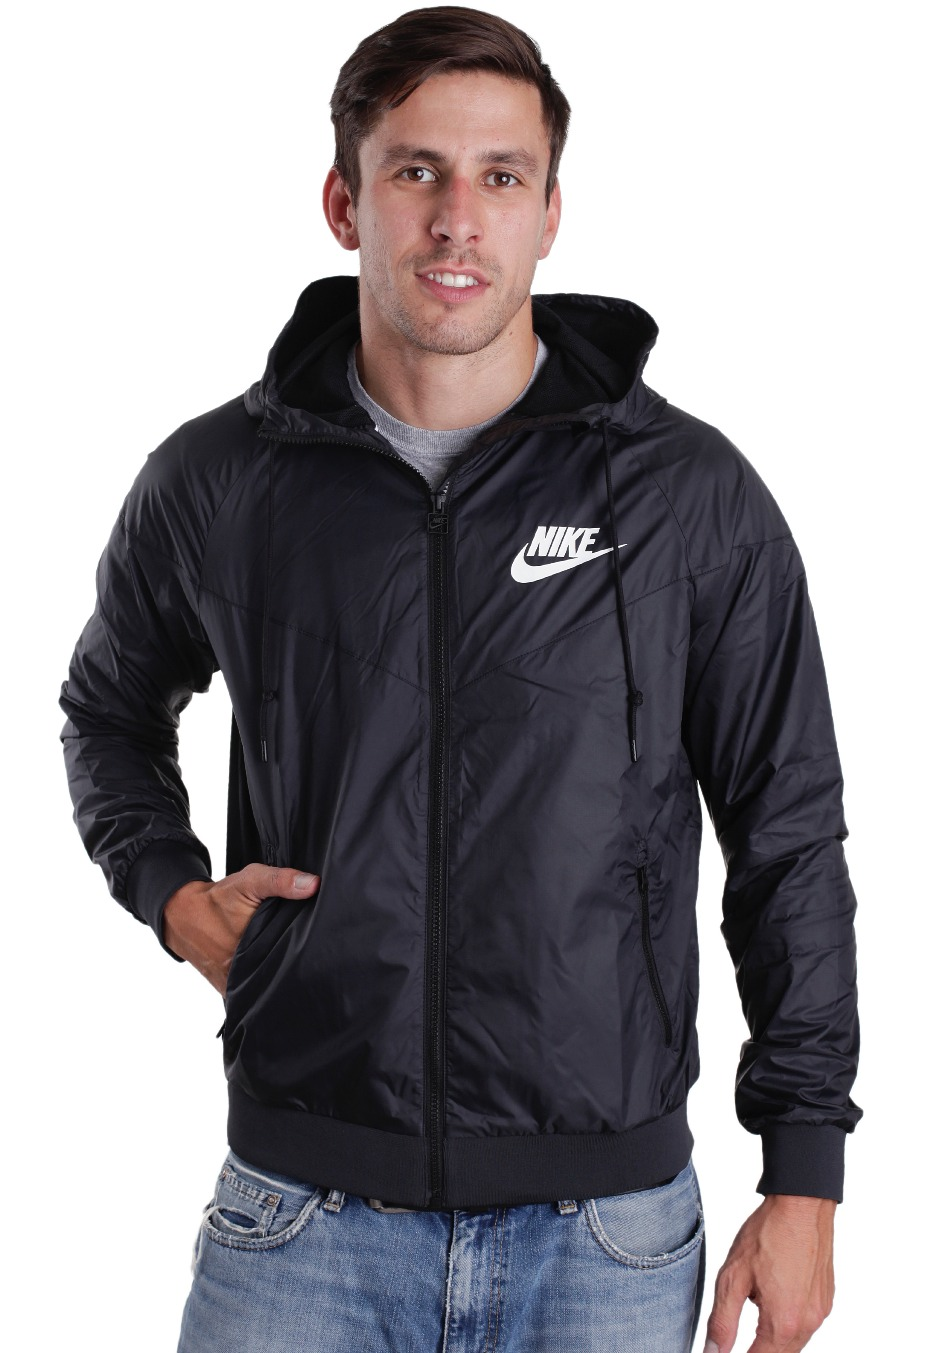 3124c7c3d2826f Nike - Windrunner Black Black White - Windbreaker - Streetwear Shop -  Impericon.com UK